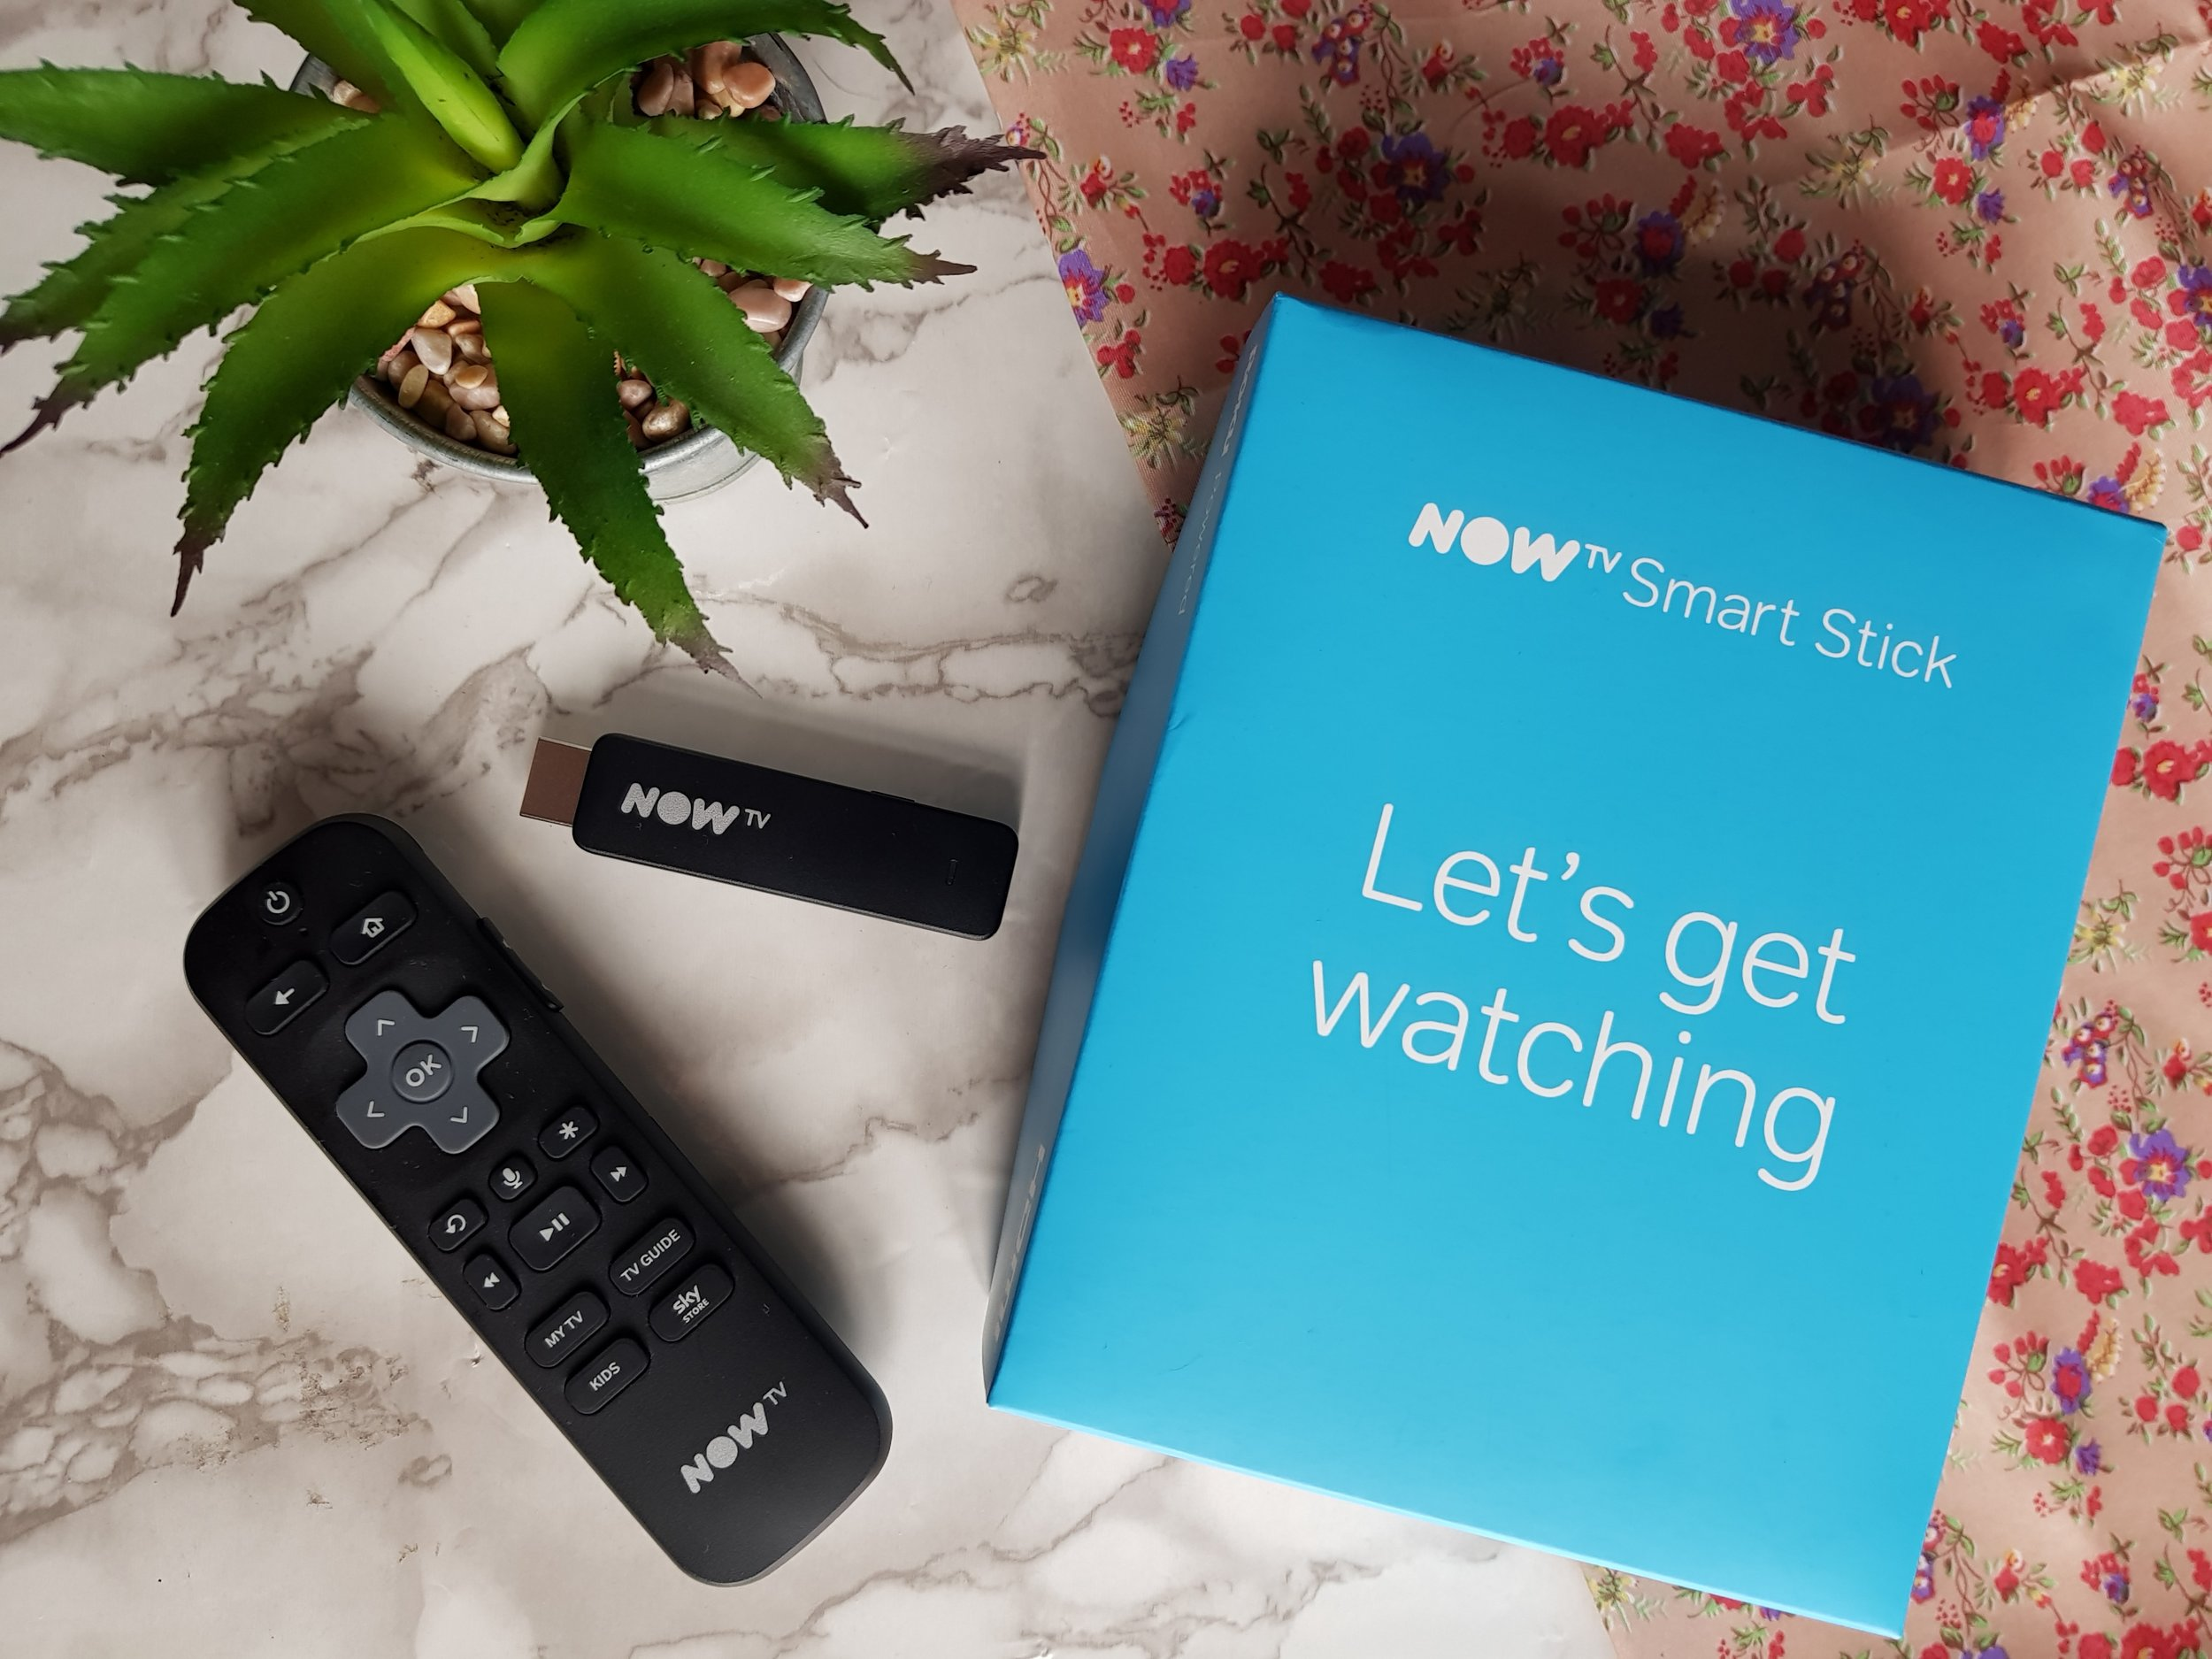 NOW TV Smart Stick Me Becoming Mum's Christmas Gift Ideas for Her